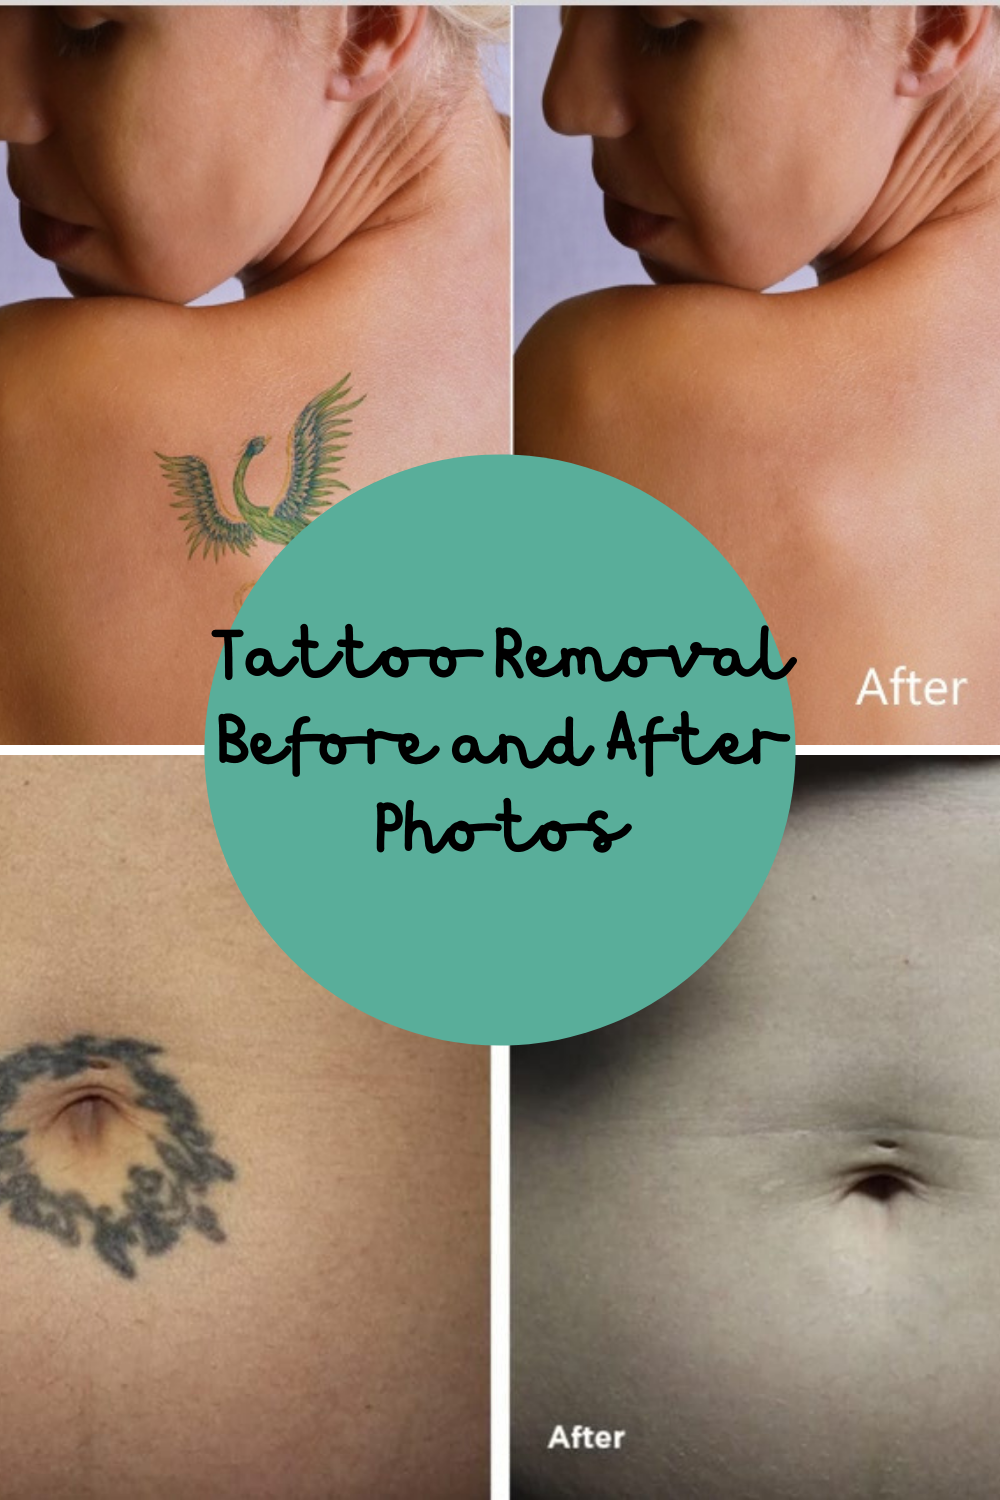 Tattoo Removal before & after images